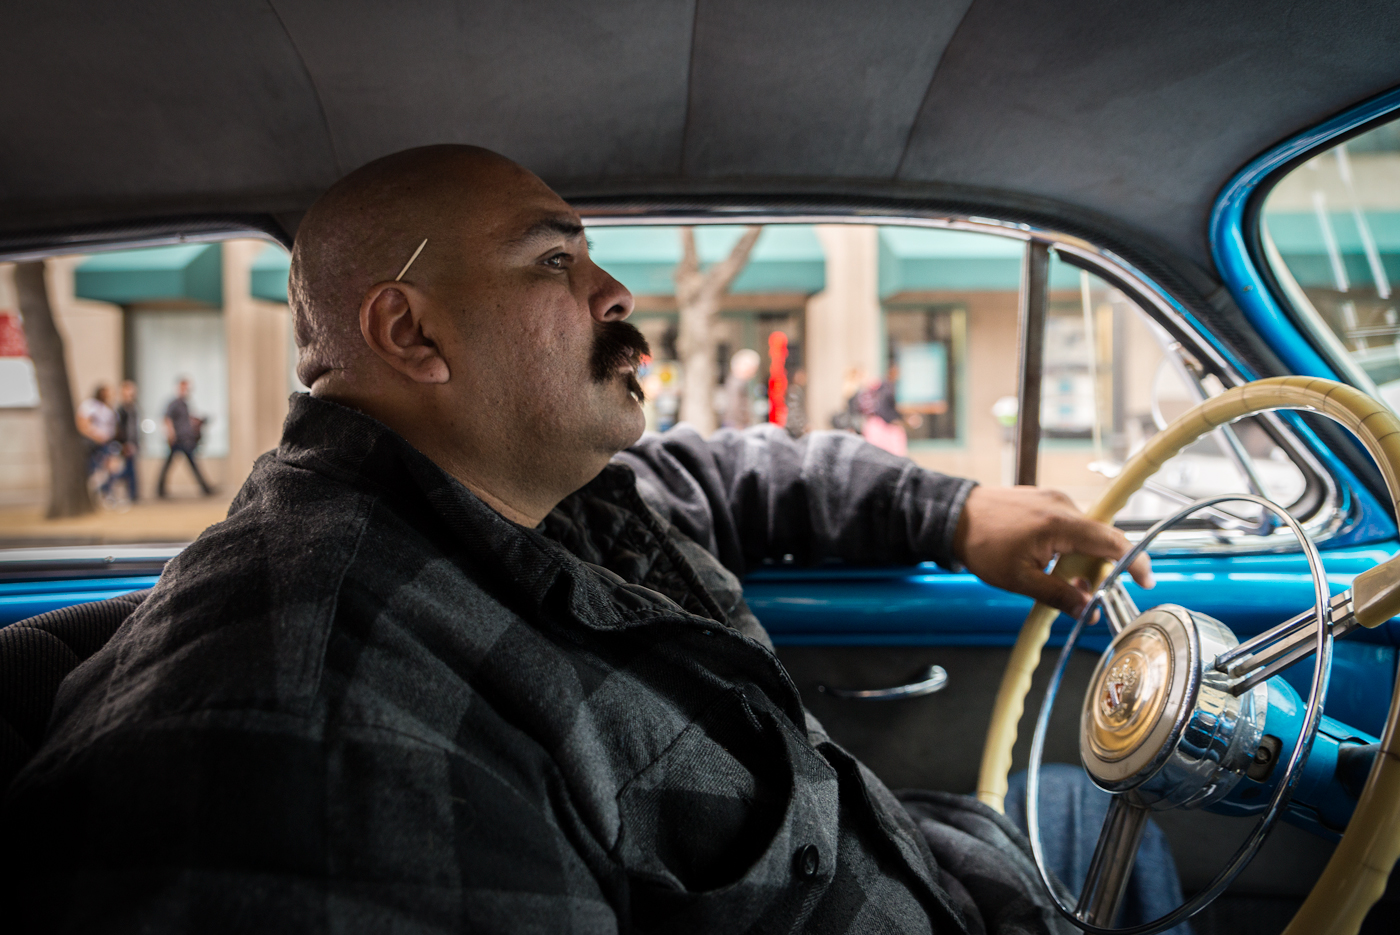 Carlos Rodriguez cruises his 1947 Buick Super - one of three lowriders his family owns. Rodriguez has been lowriding for the last 12 years. Though he did not grow up lowriding, he is determined to make the activity an integral part of his children's lives.  ARASE /PHOTOGRAPHING 'SLOW AND LOW'